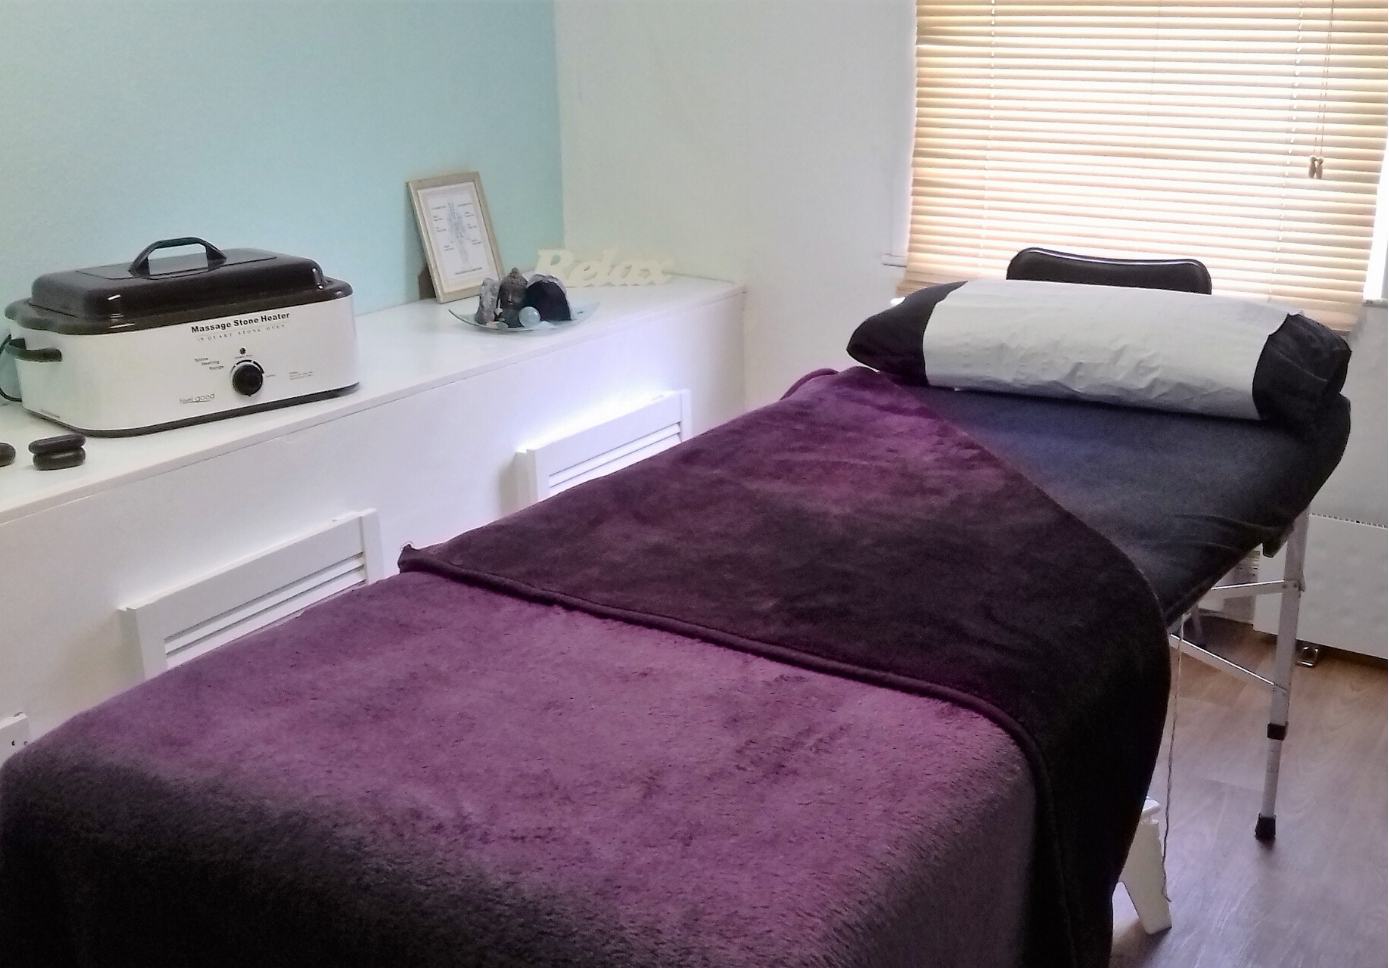 Treatment Rooms to Hire